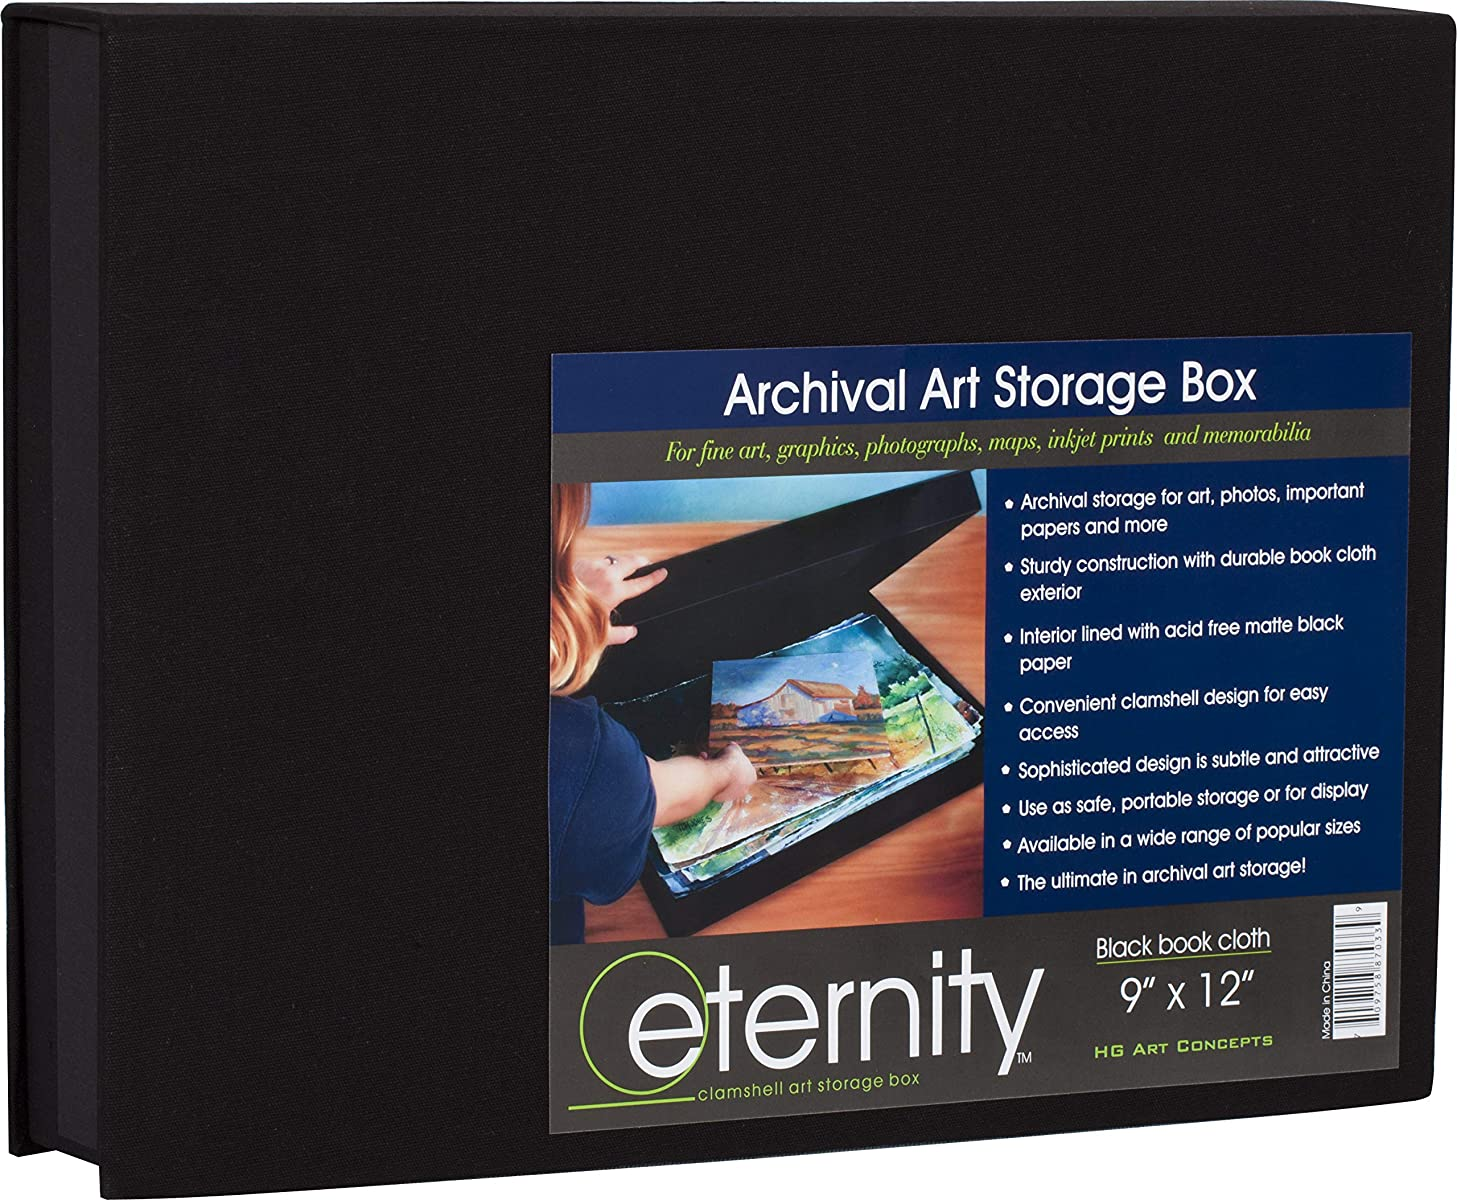 HG Concepts Art Photo Storage Box Eternity Archival Clamshell Box for Storing Artwork, Photos & Documents Deluxe Acid-Free Sturdy & Lined with Archival Paper - [Black - 9